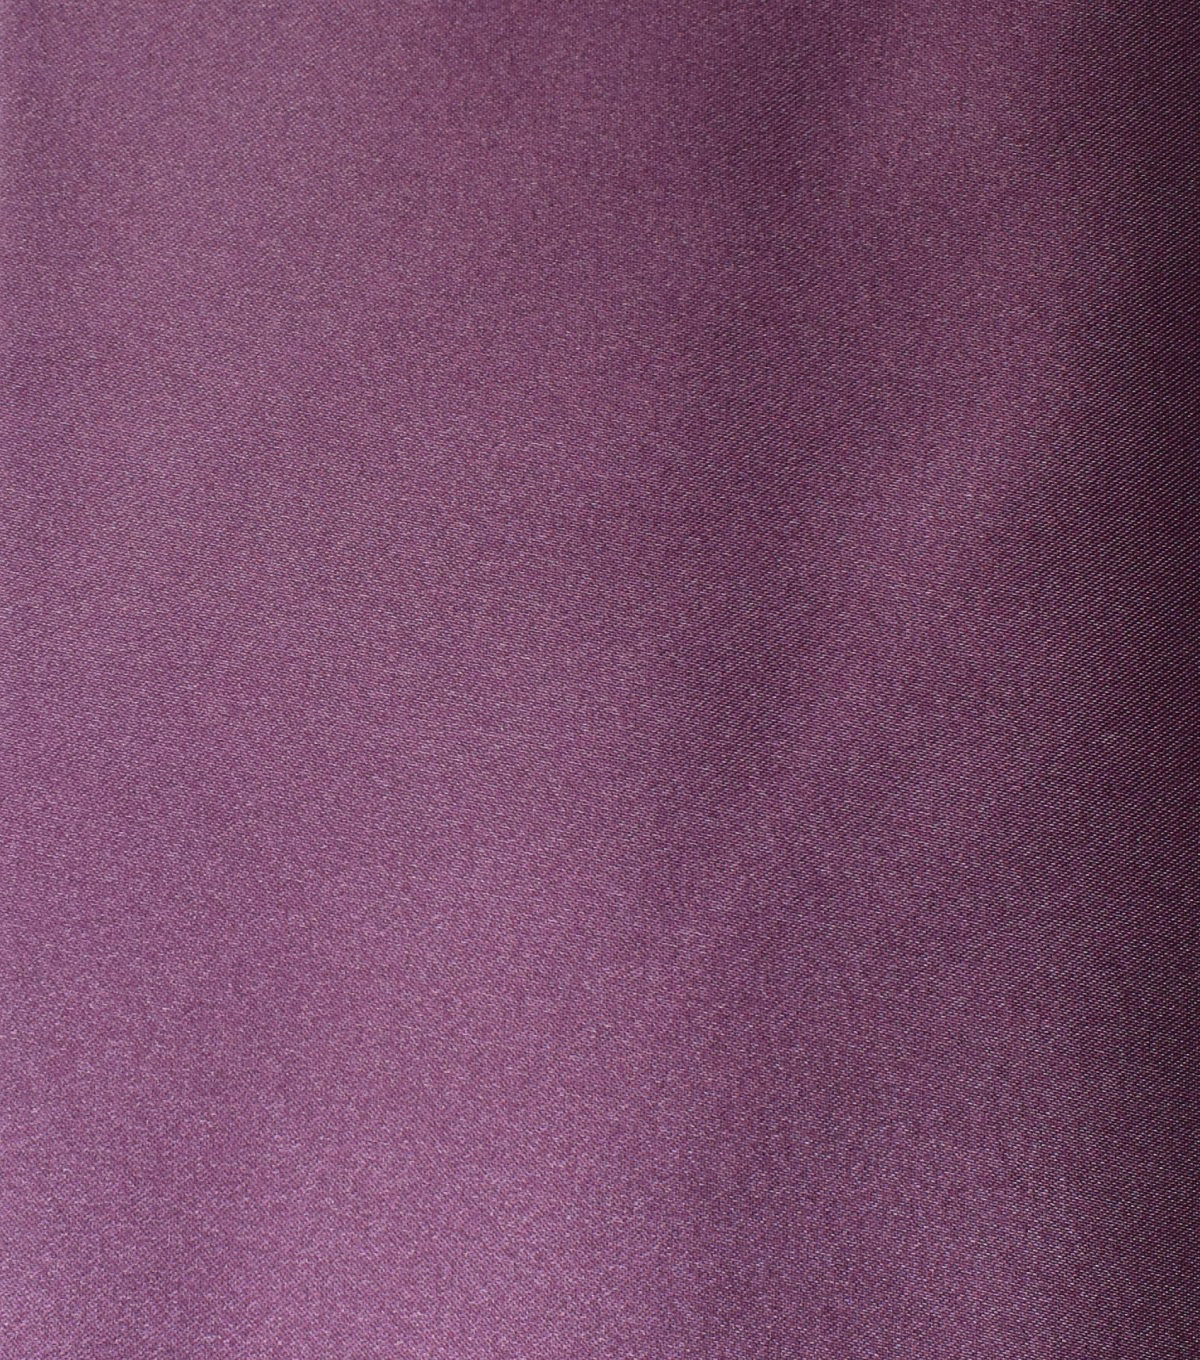 Casa Collection Shiny Satin Fabric, Blackberry Wine